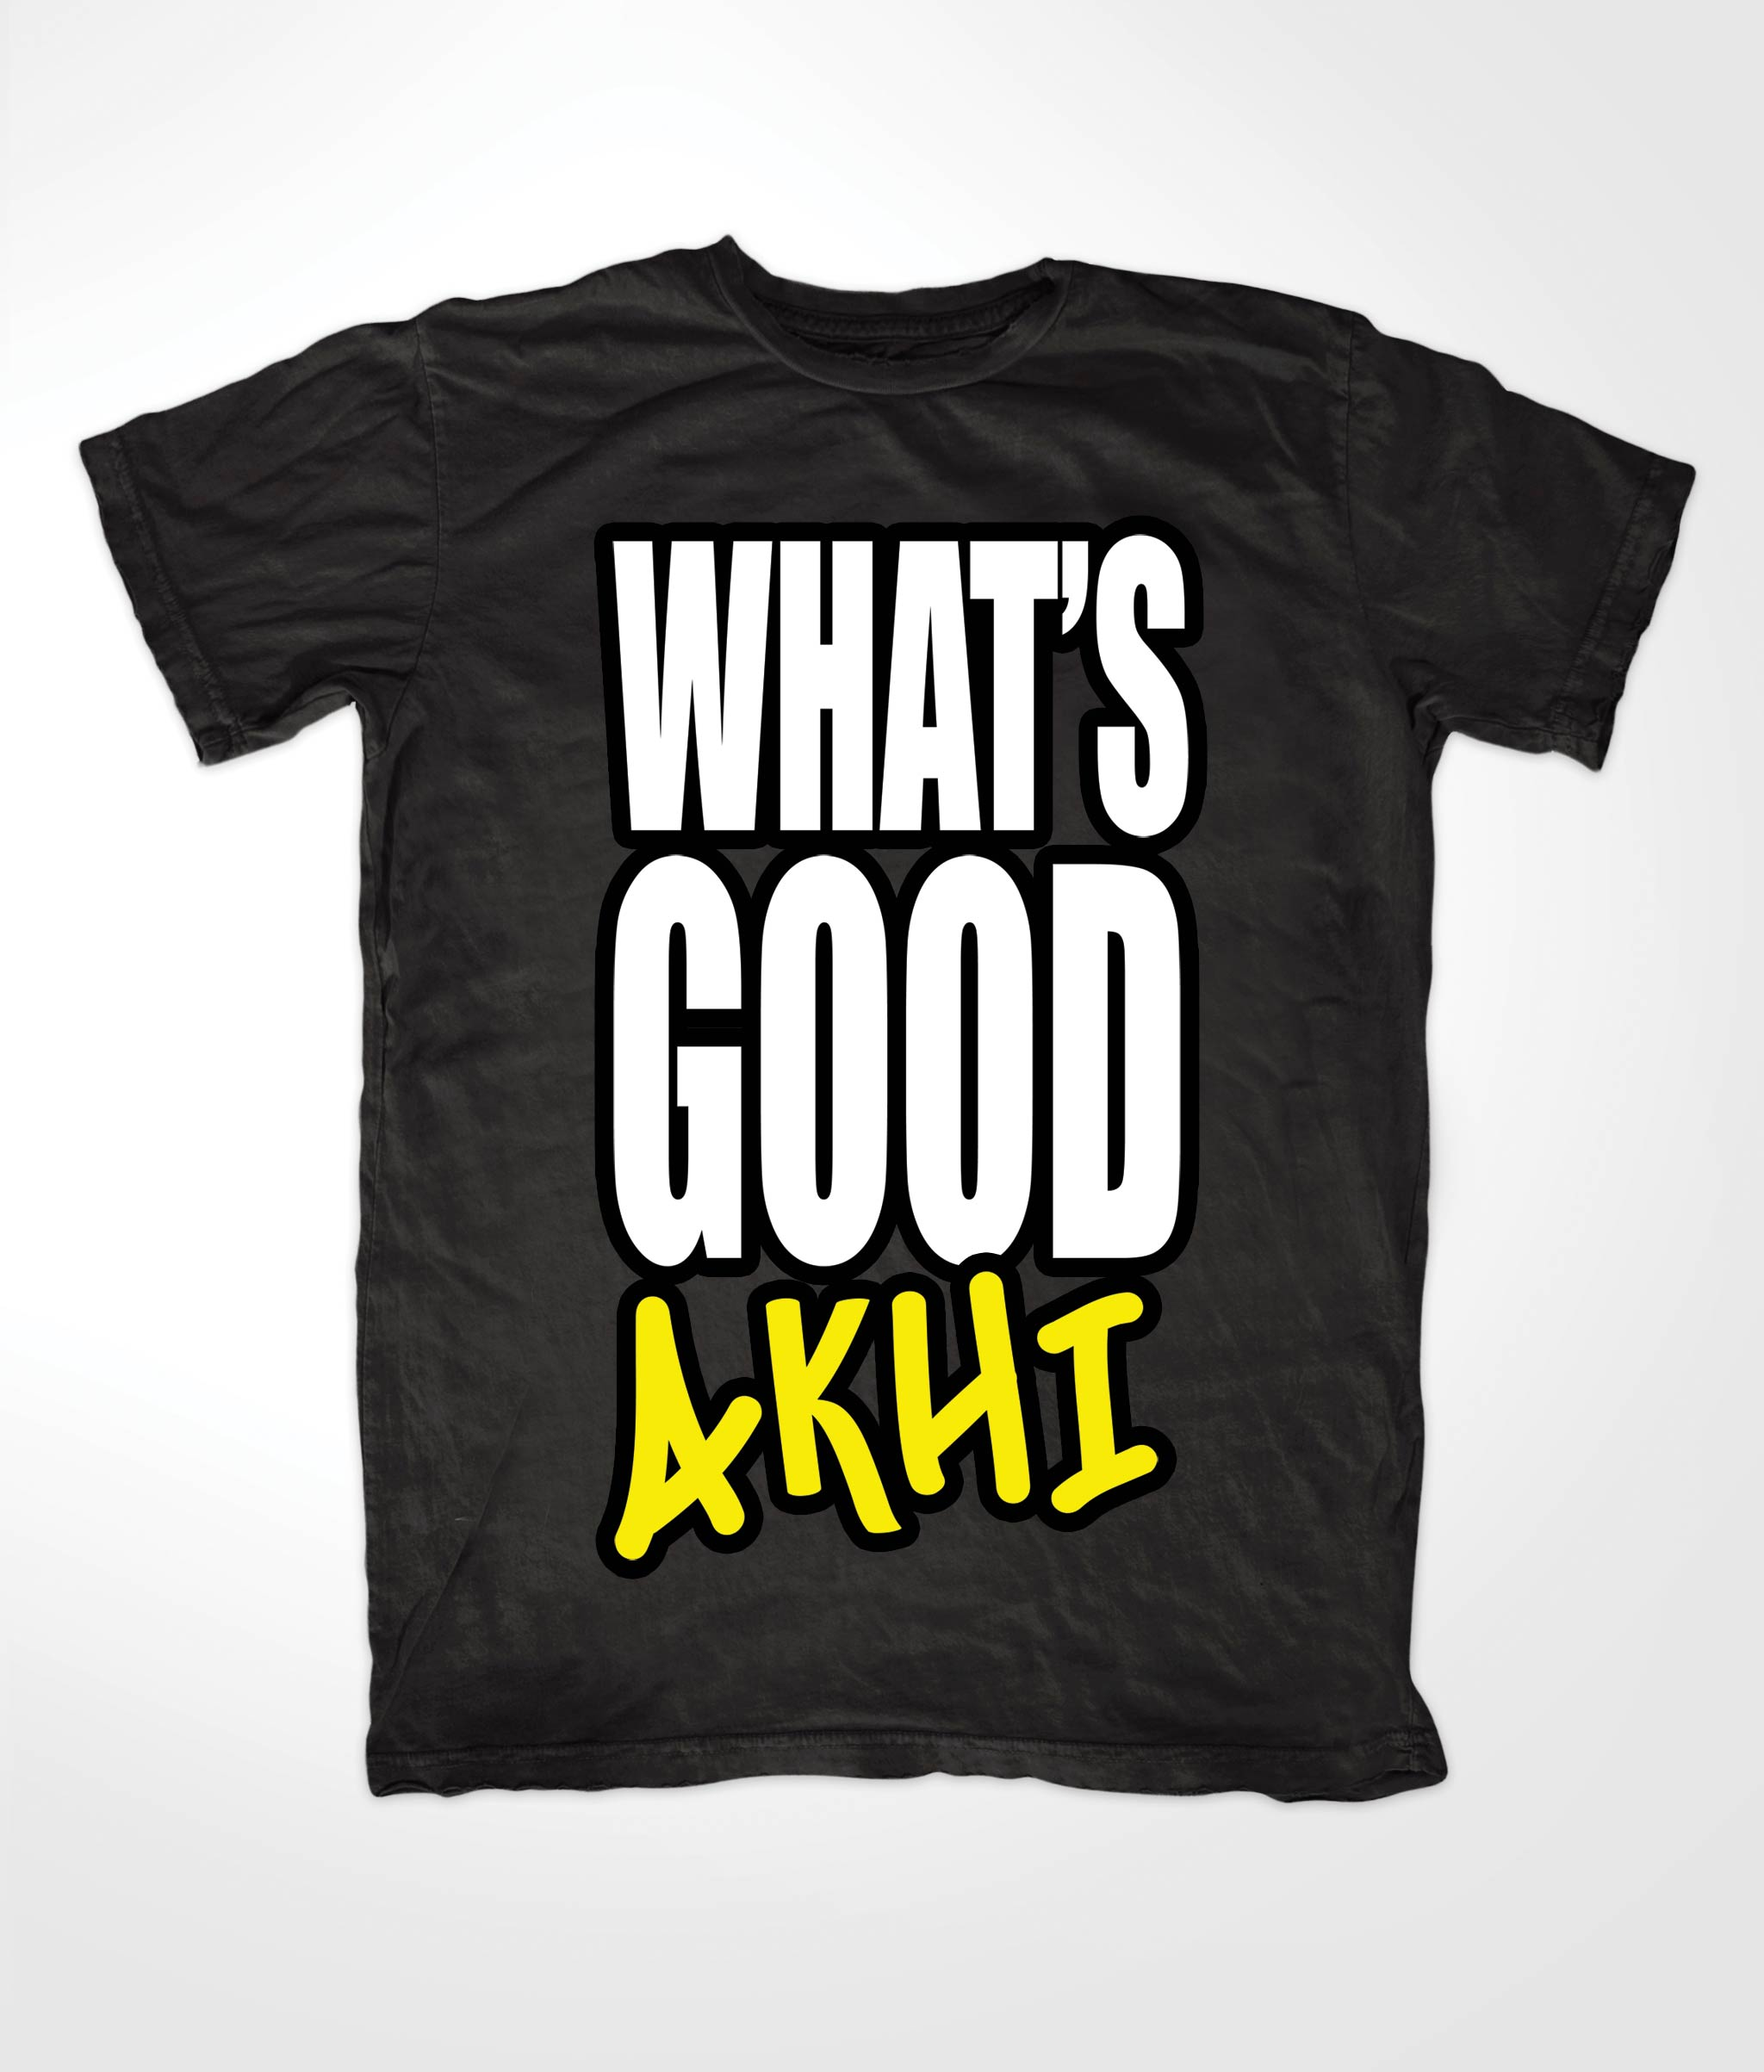 Whats Good Akhi Muslim Black T shirt